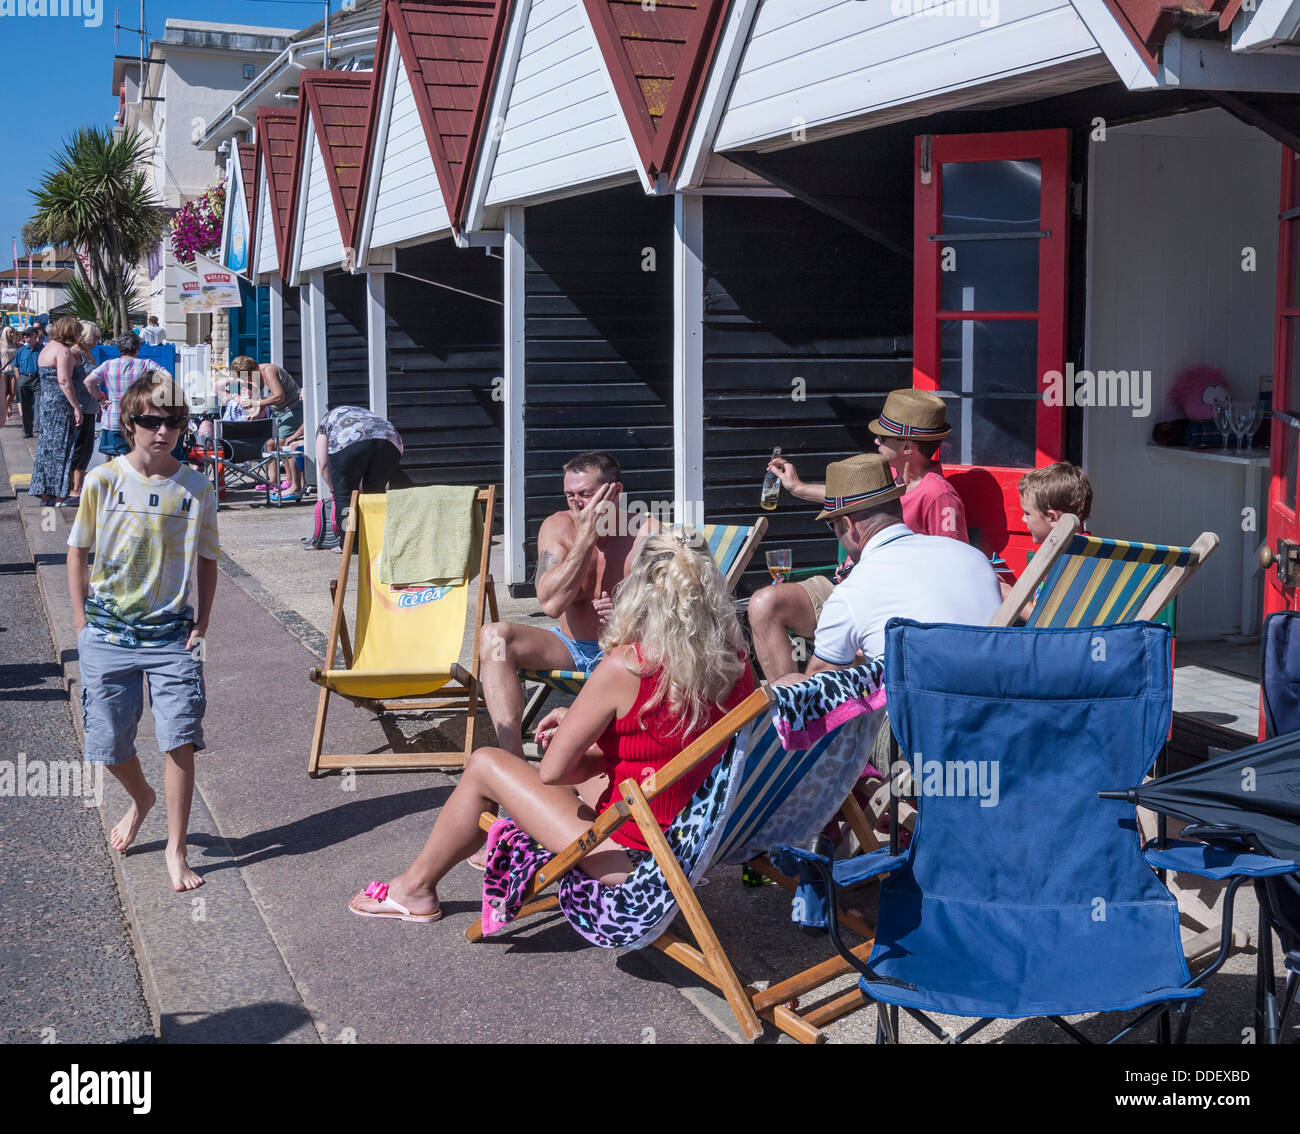 Bournemouth Beach Huts with holidaymakers, Dorset, England, UK. - Stock Image